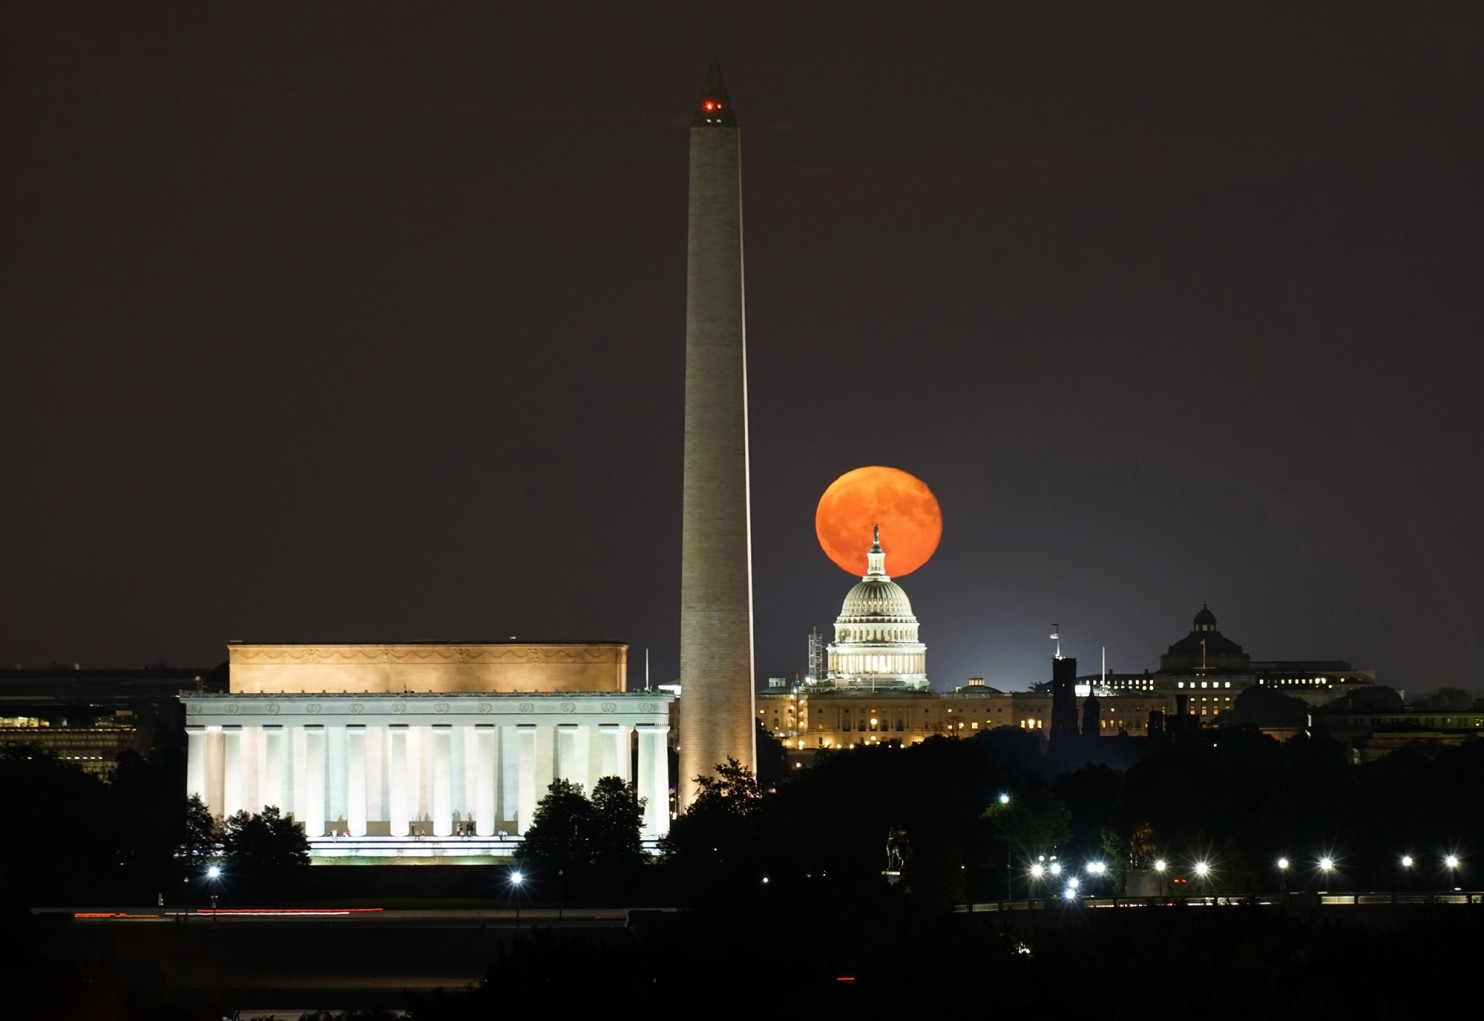 The Harvest Moon rises above Washington D.C., September 17, 2016. Photo credit: Kevin Ambrose